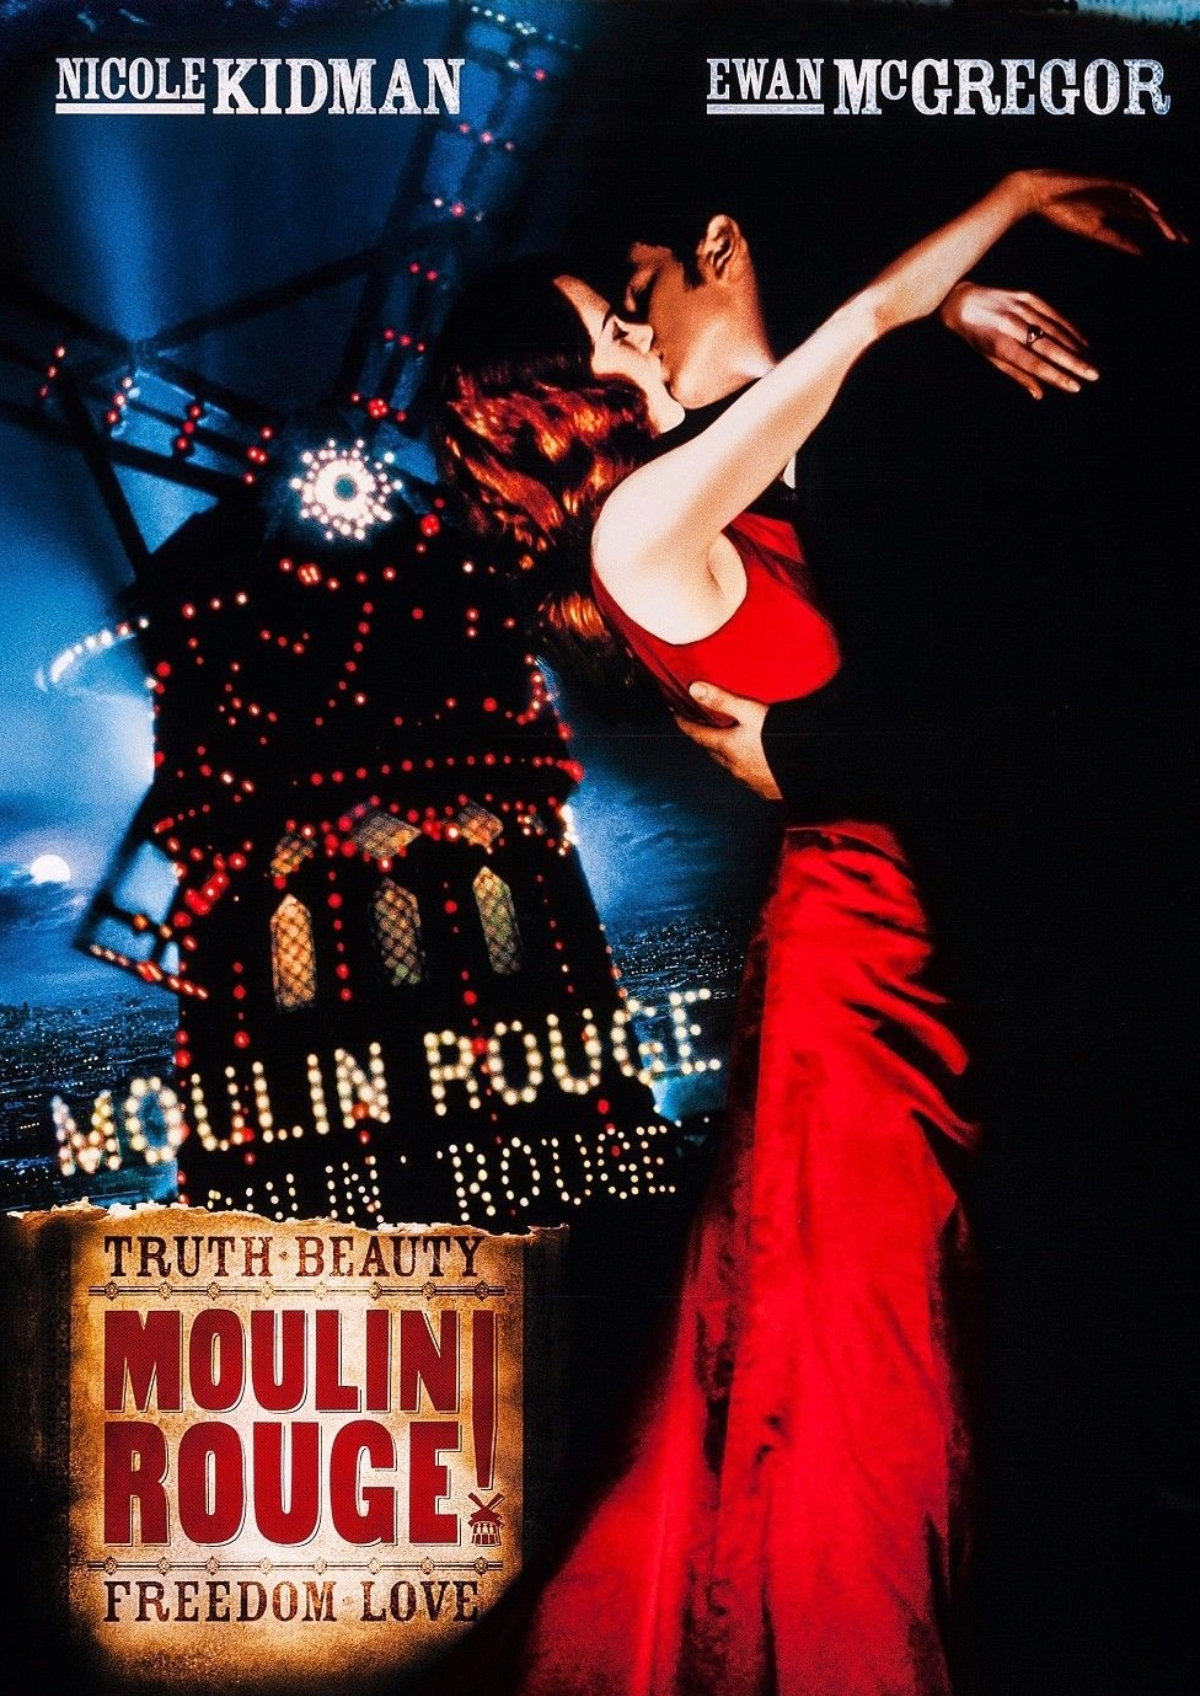 'Moulin Rouge' movie poster